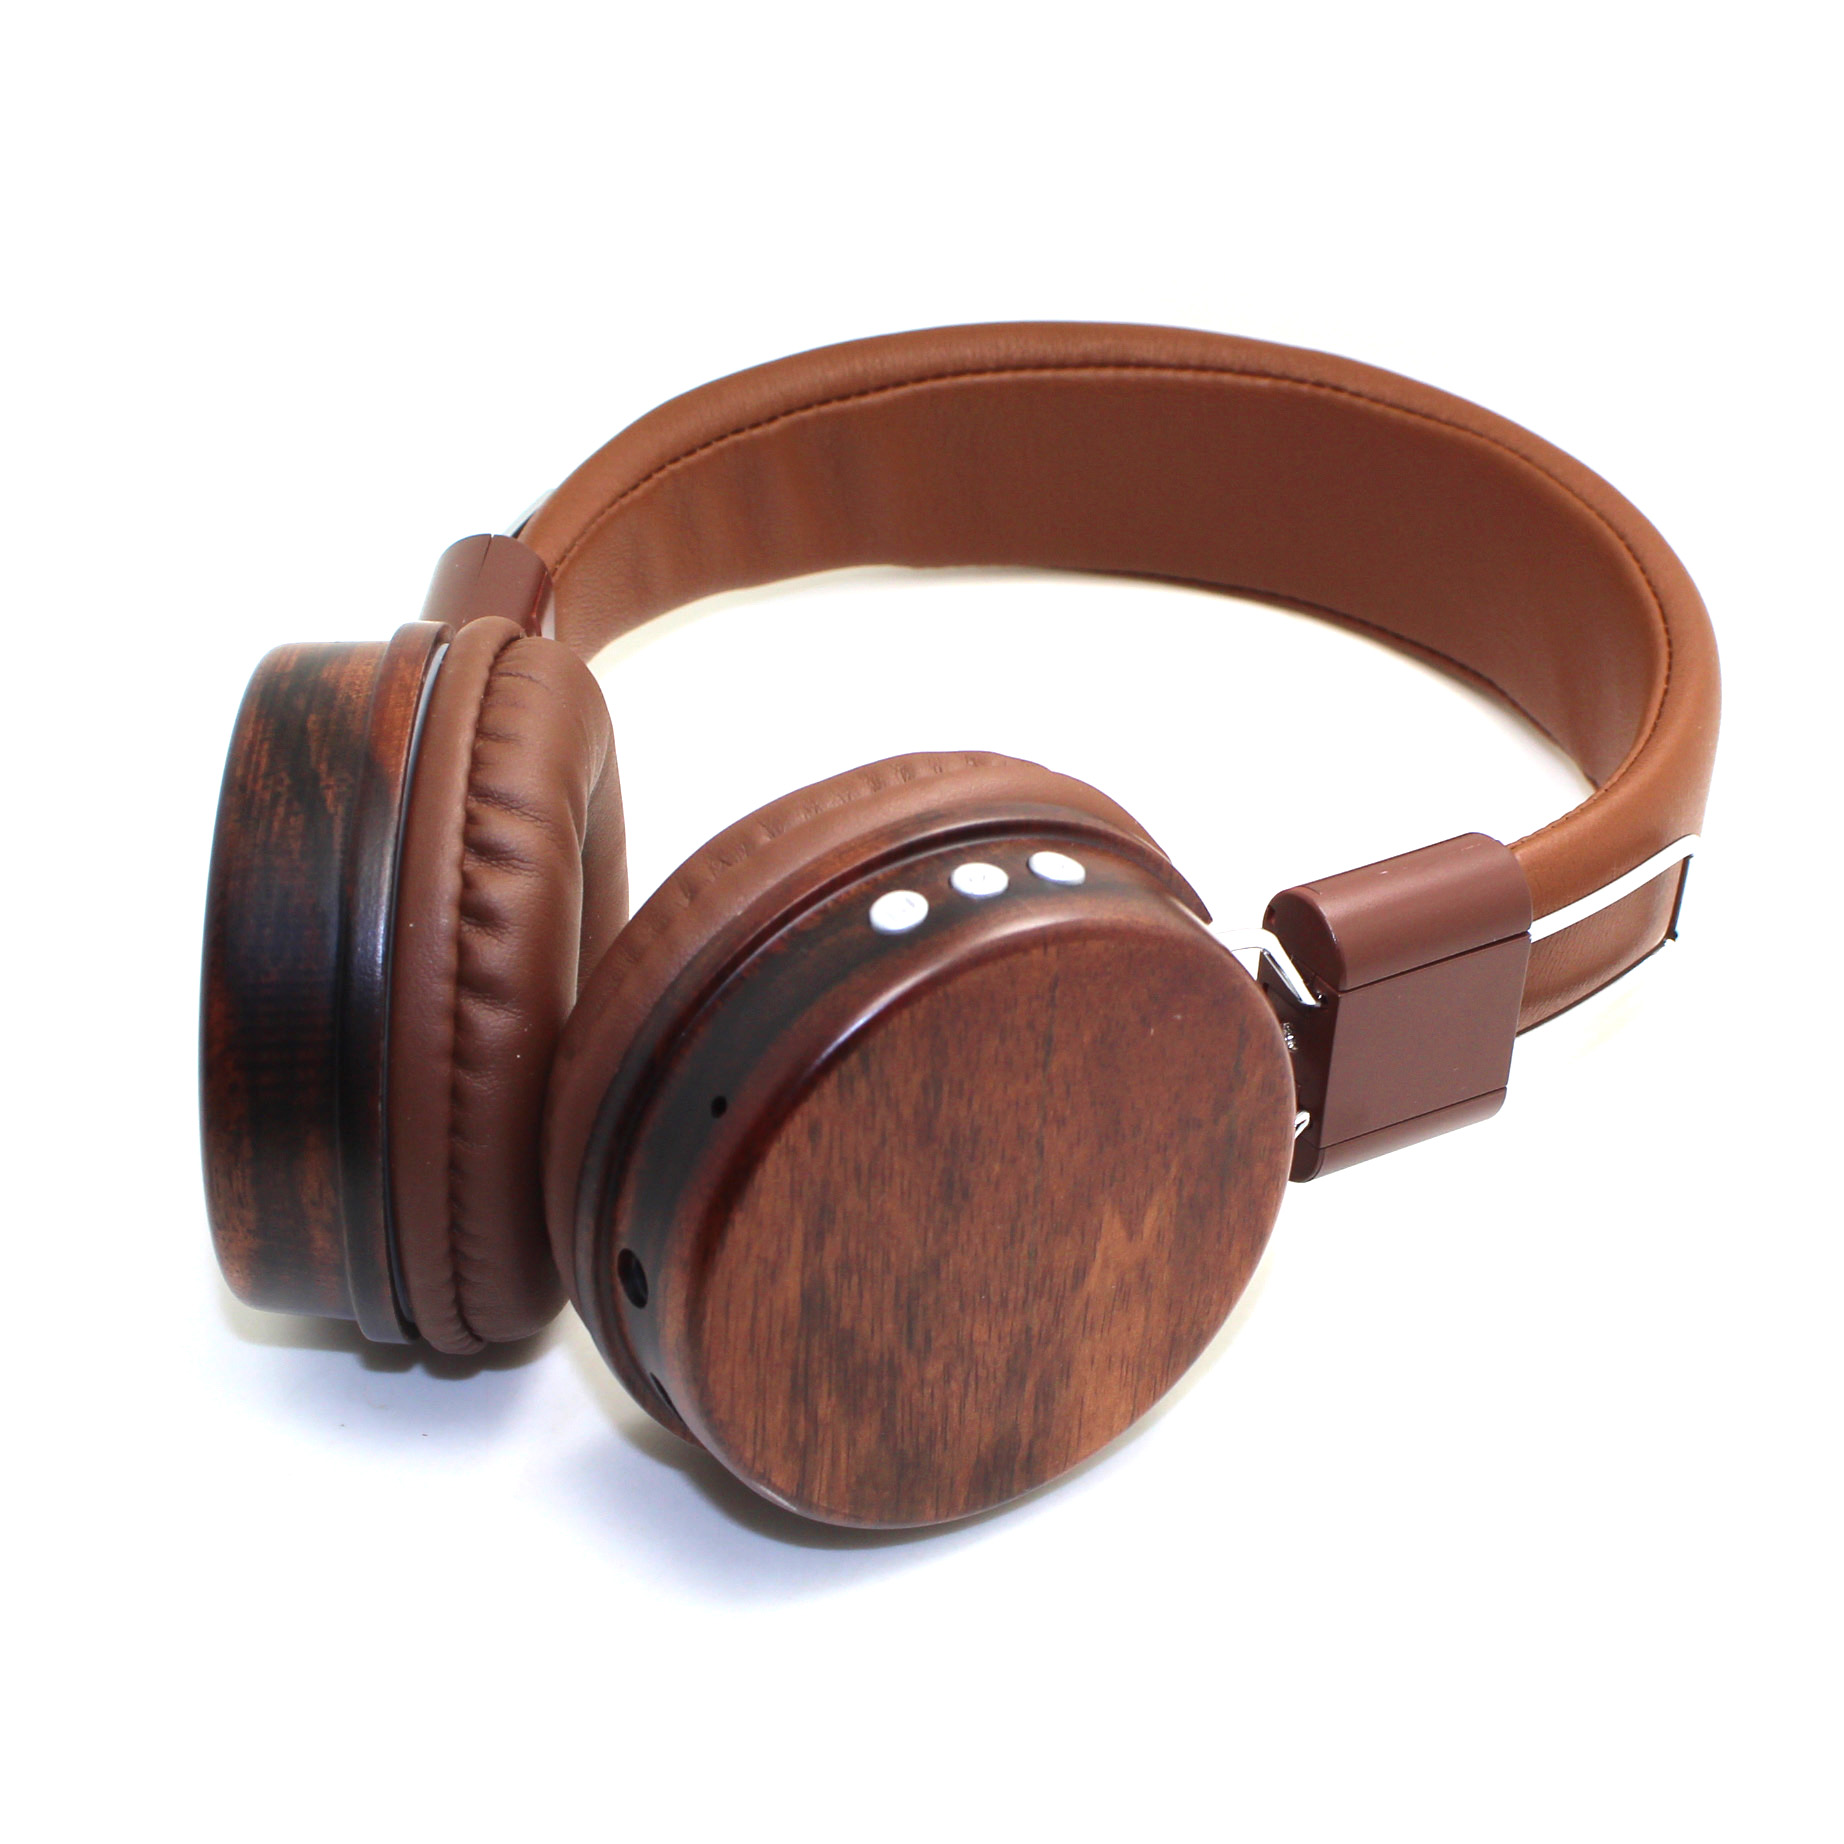 OEM-BL159 Low Price gold metal wood headphones gift bluetooth on ear fashionable wooden headset for (4)